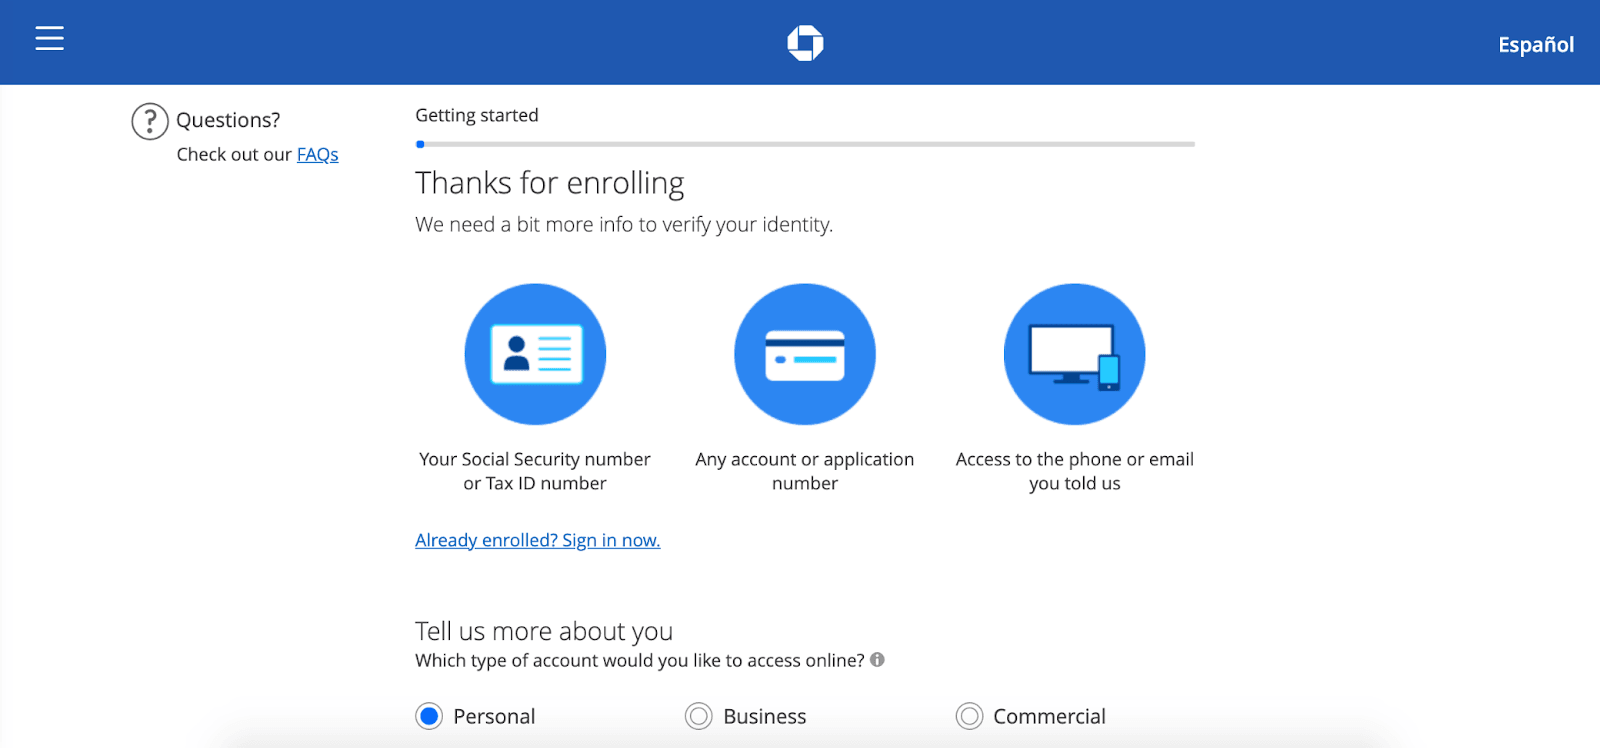 Chase Bank Review: Combining Online And Local Banking - More info to verify your identity